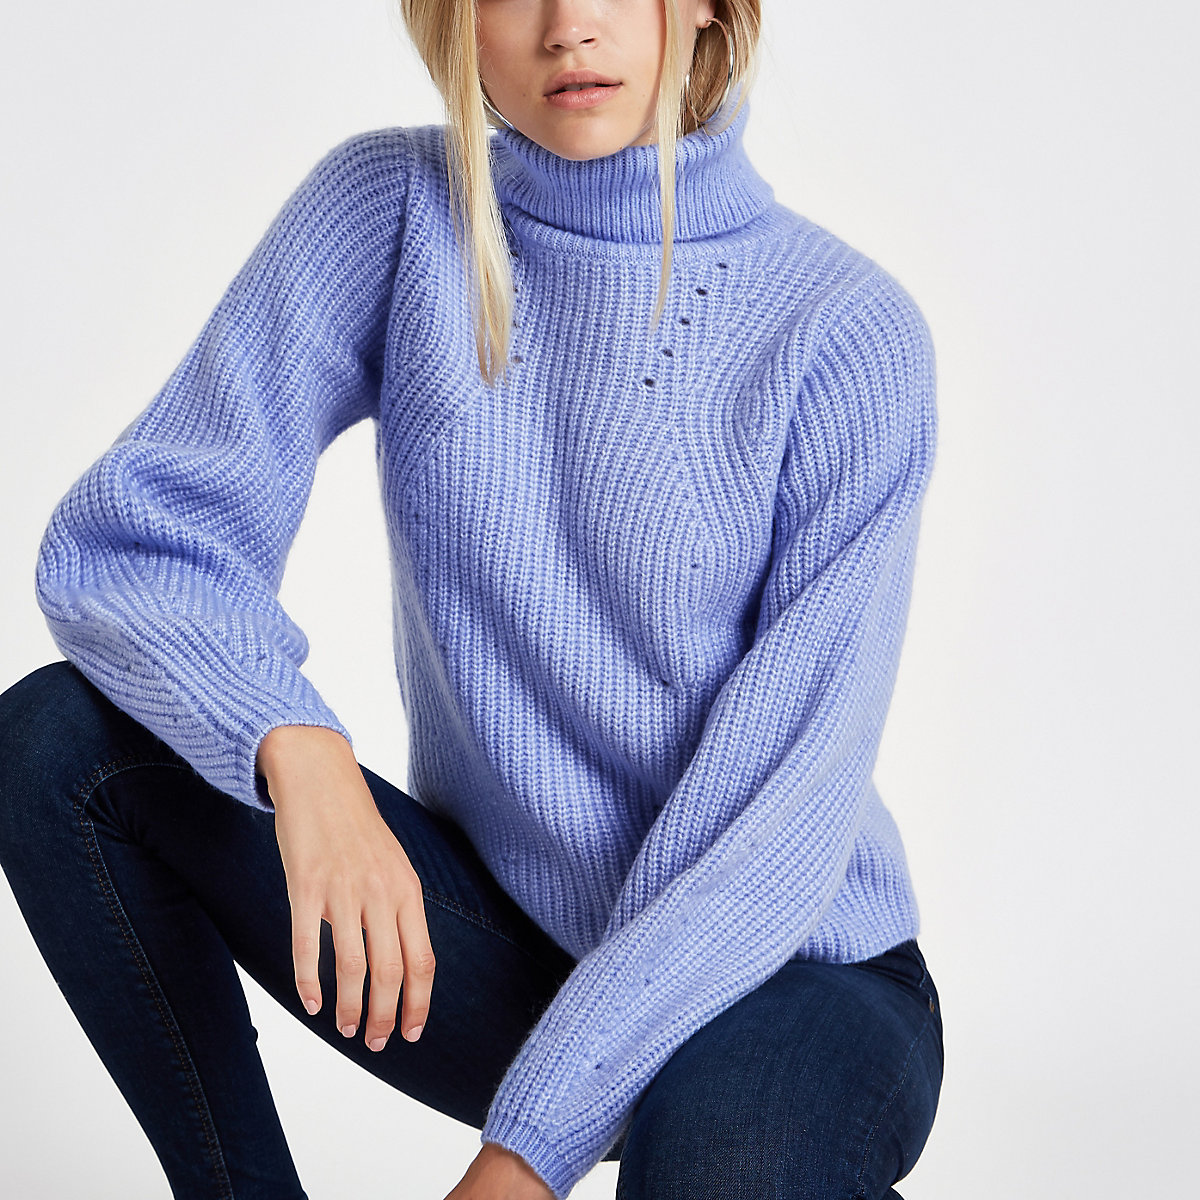 Light blue knitted roll neck sweater